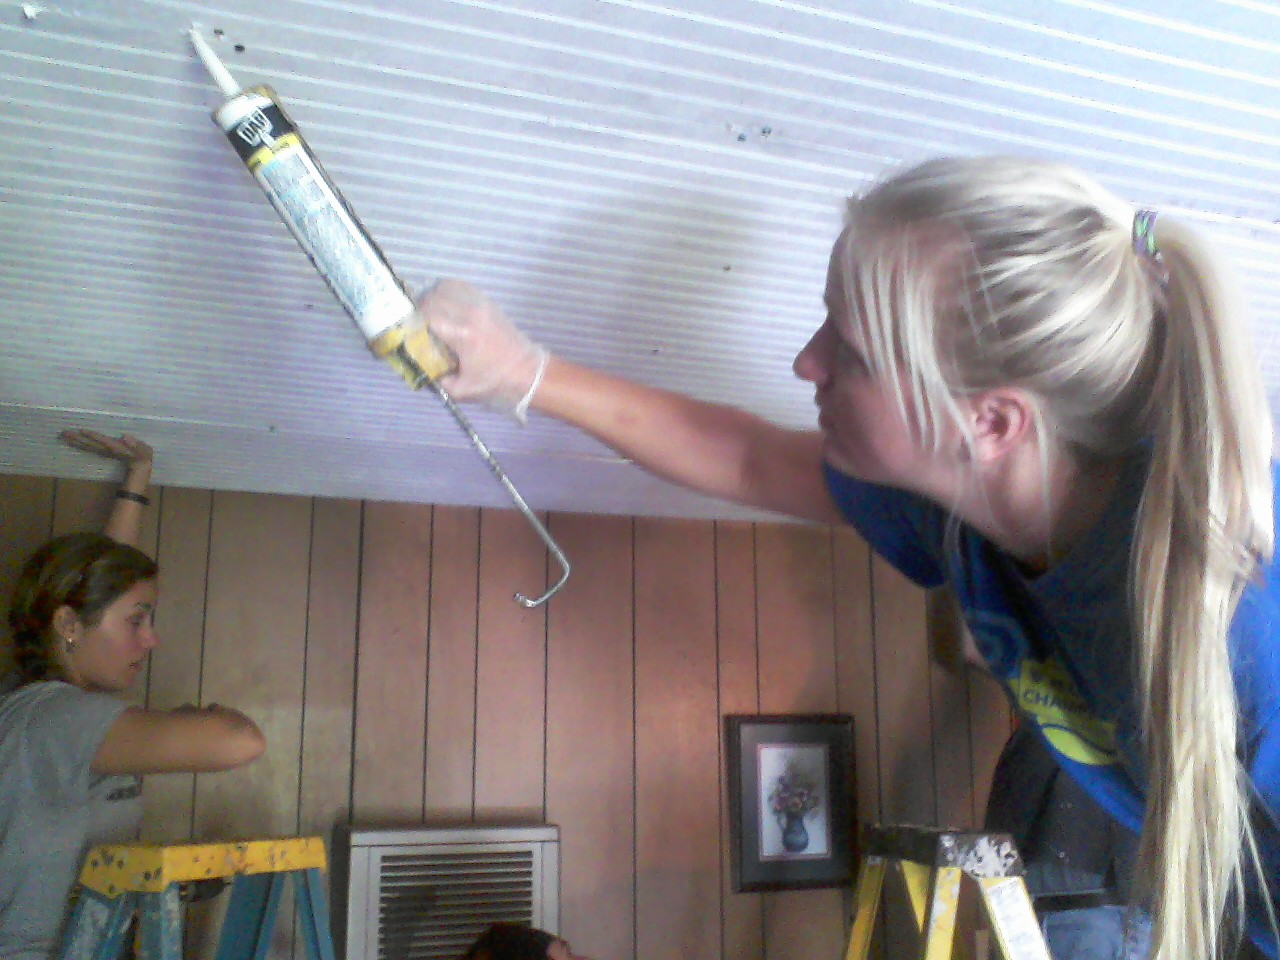 Caroline wields a mean caulk gun.